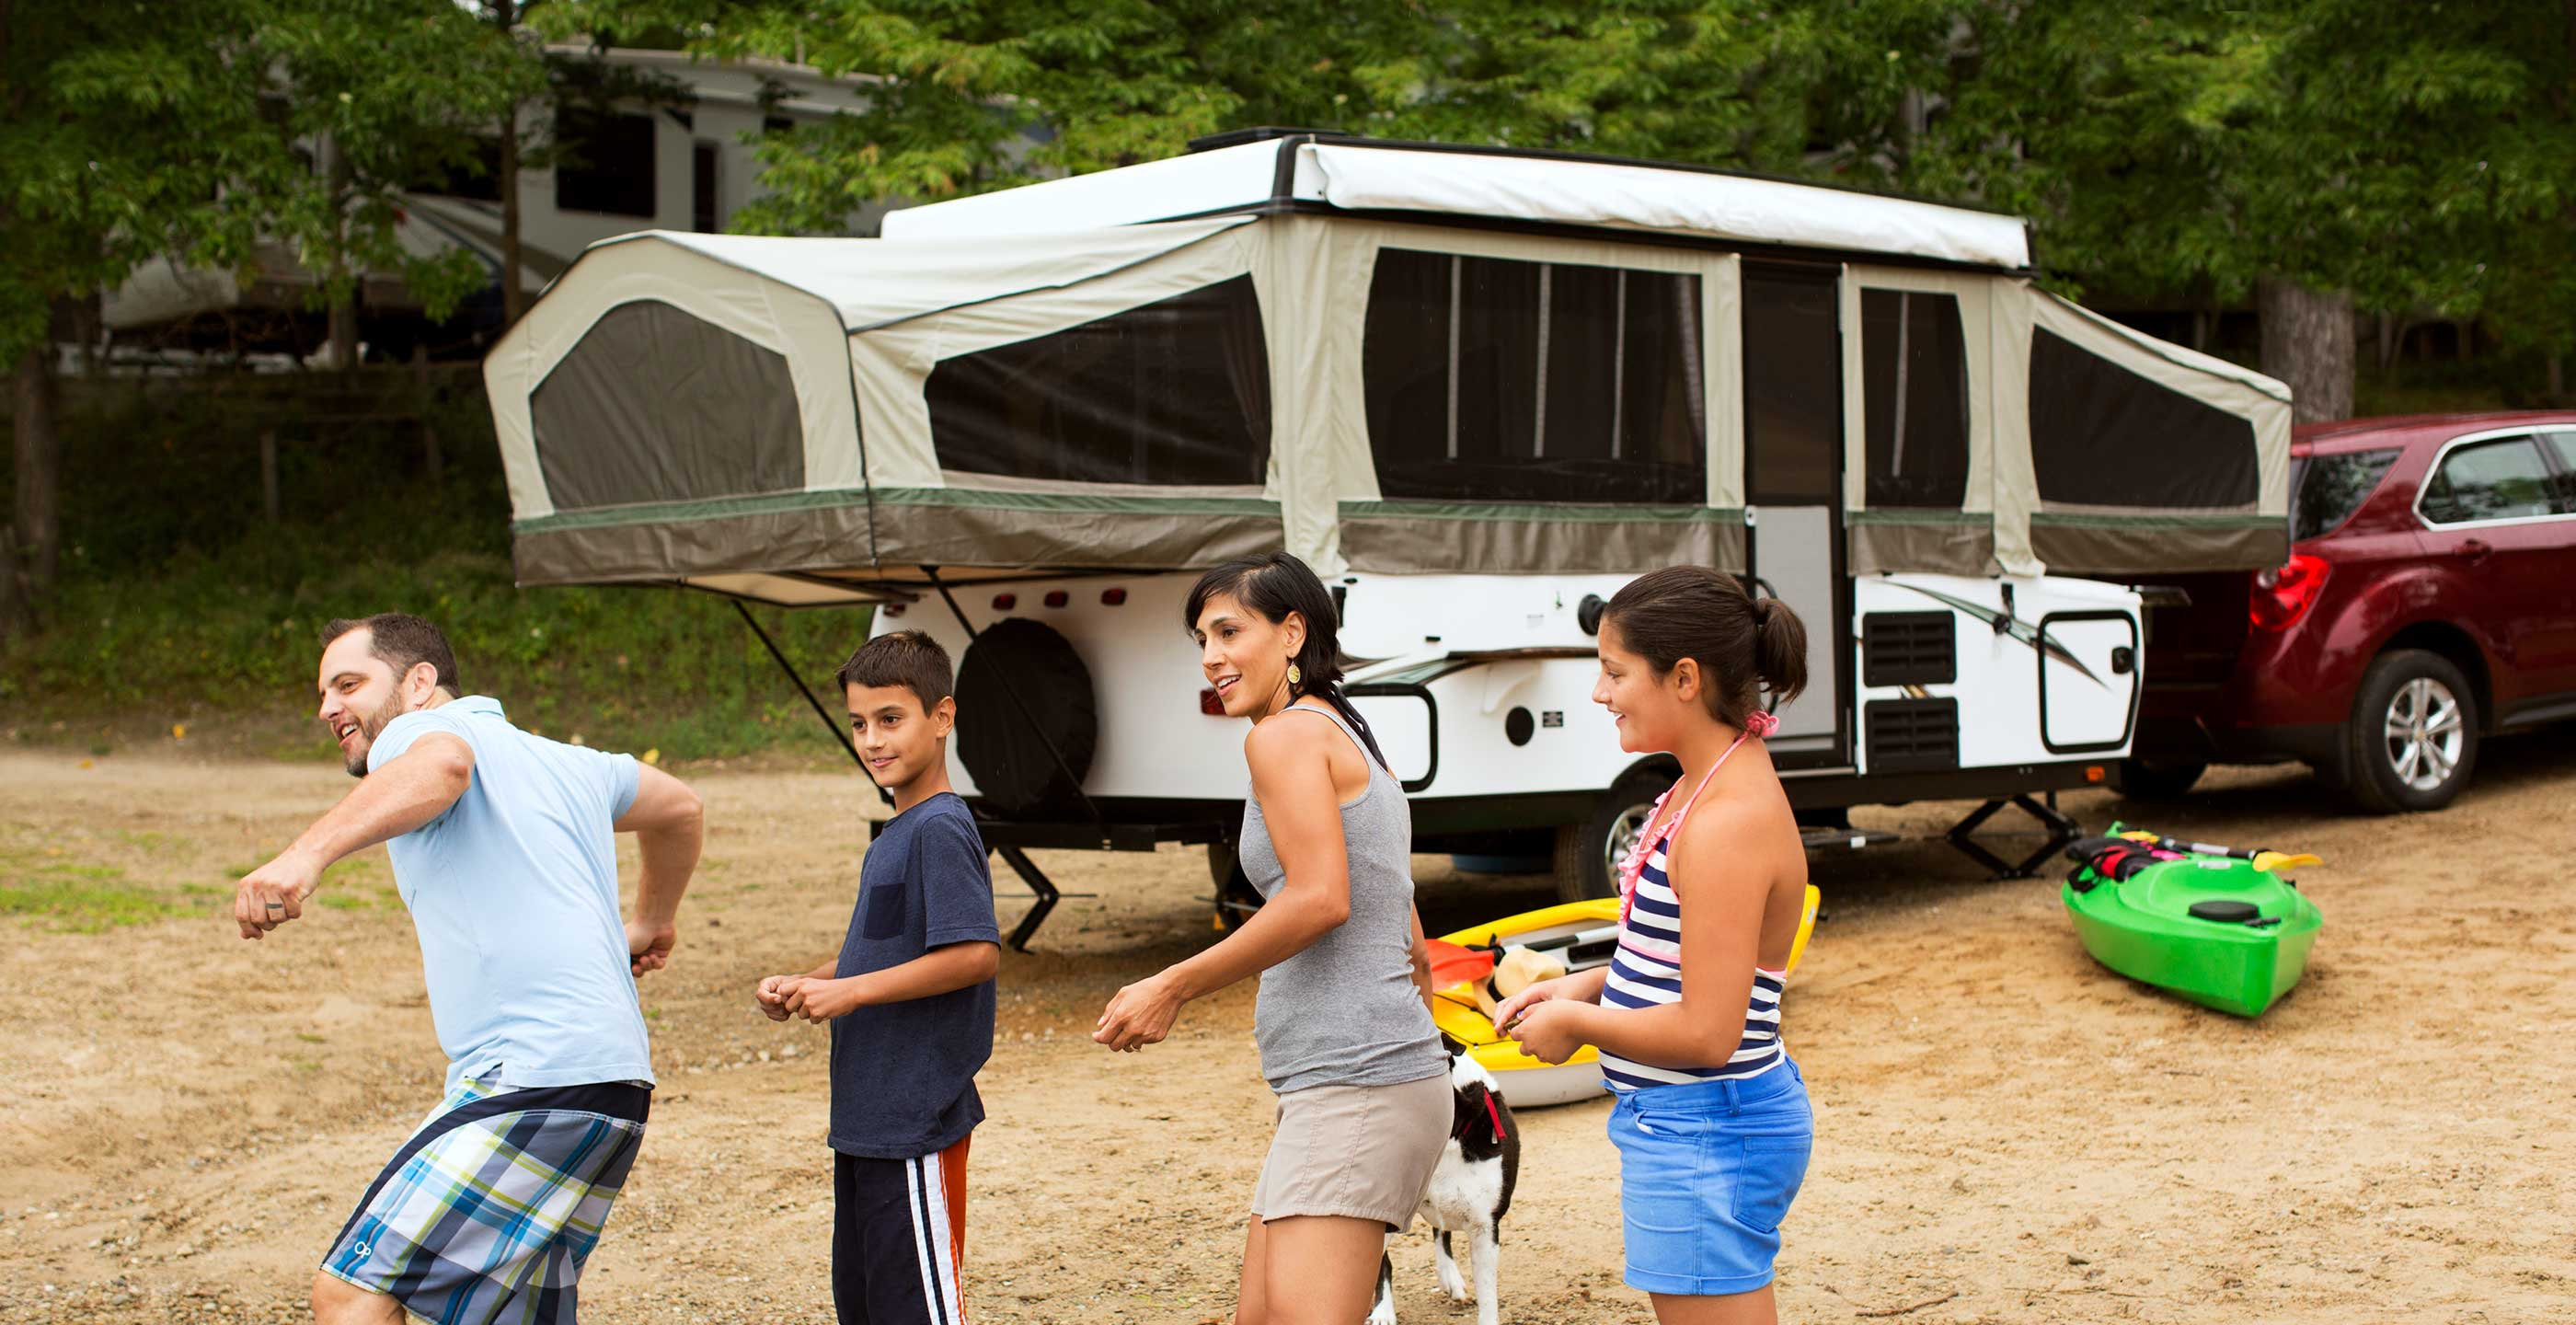 Tent Camping Trailer - Pop up Trailers